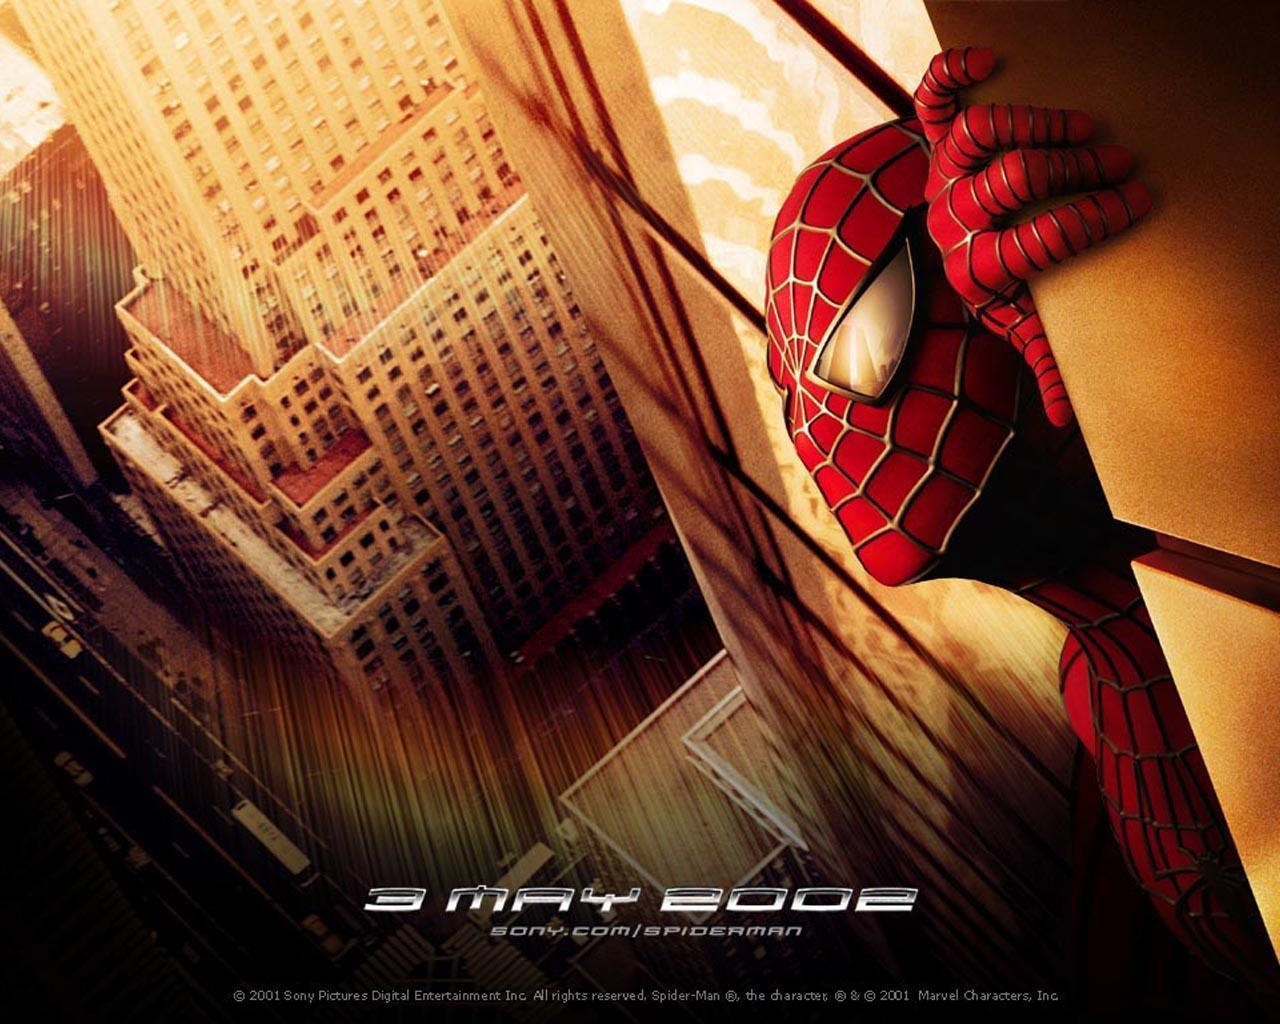 Spiderman Hd Wallpapers For Iphone Wallpapers